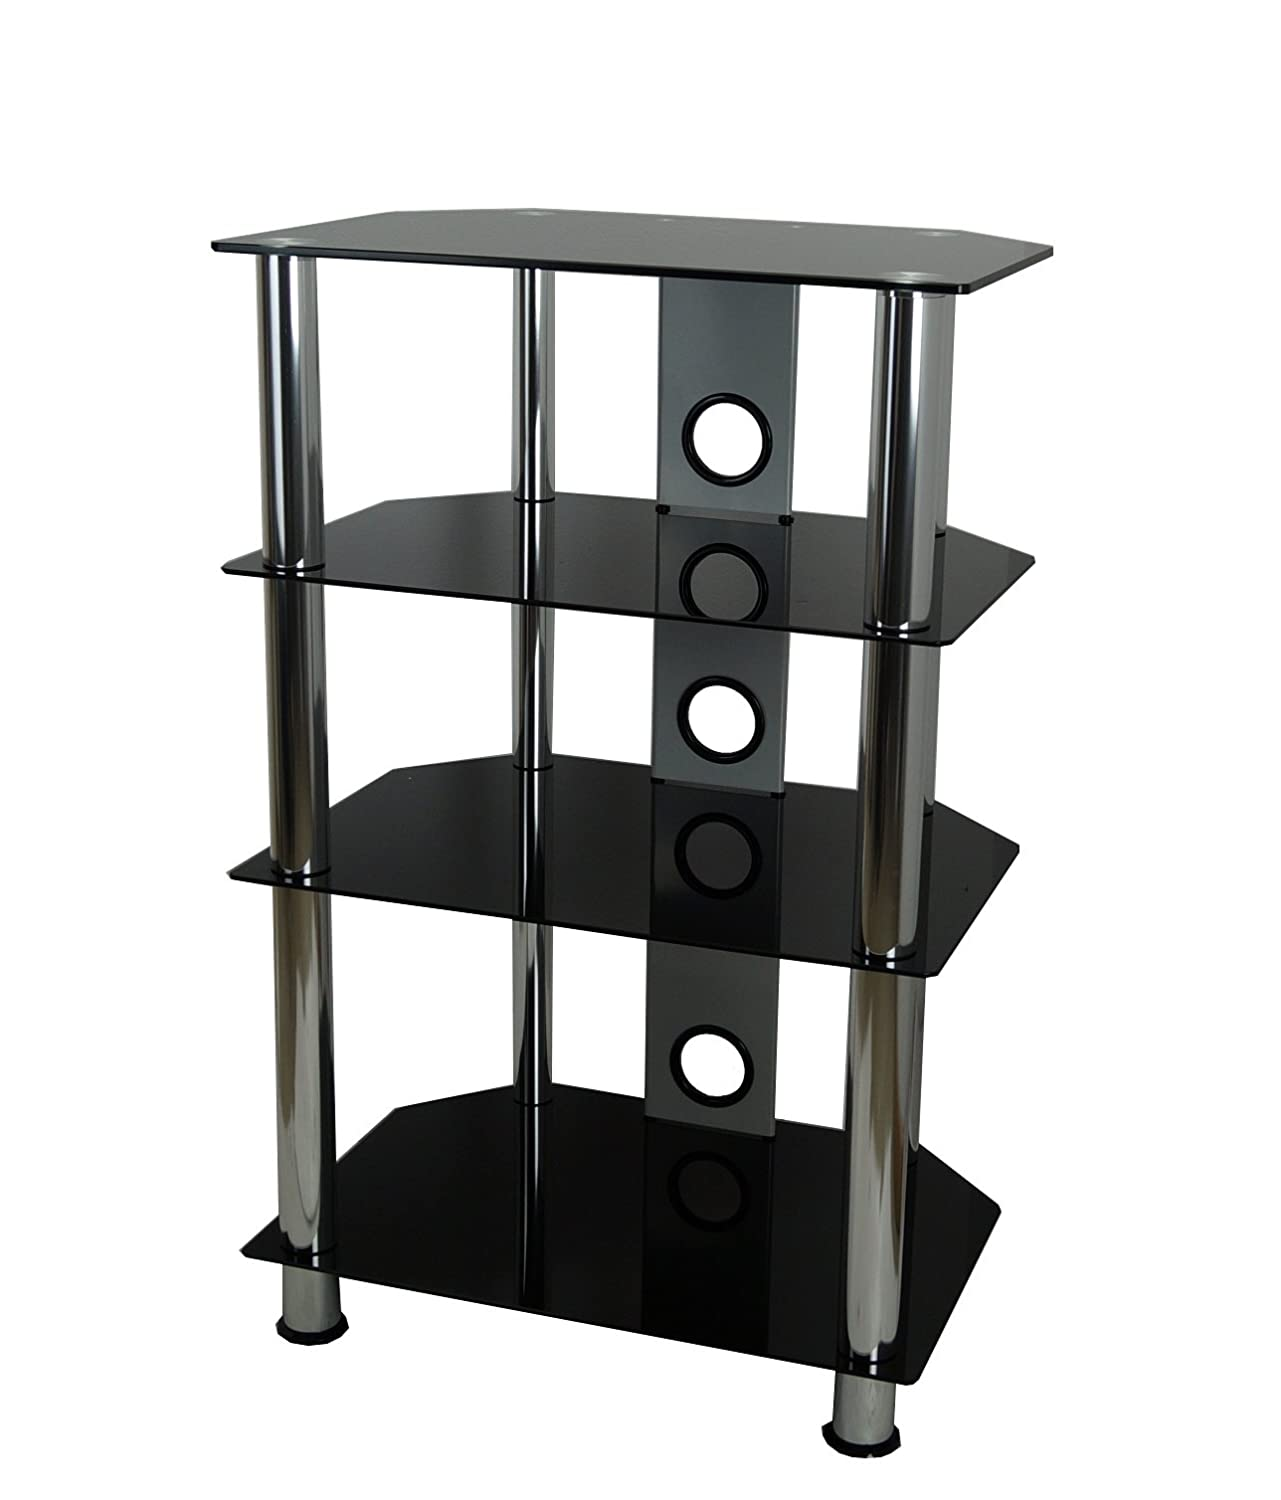 black glass silver legs hi fi console tv stand 4 shelf now reduced ebay. Black Bedroom Furniture Sets. Home Design Ideas